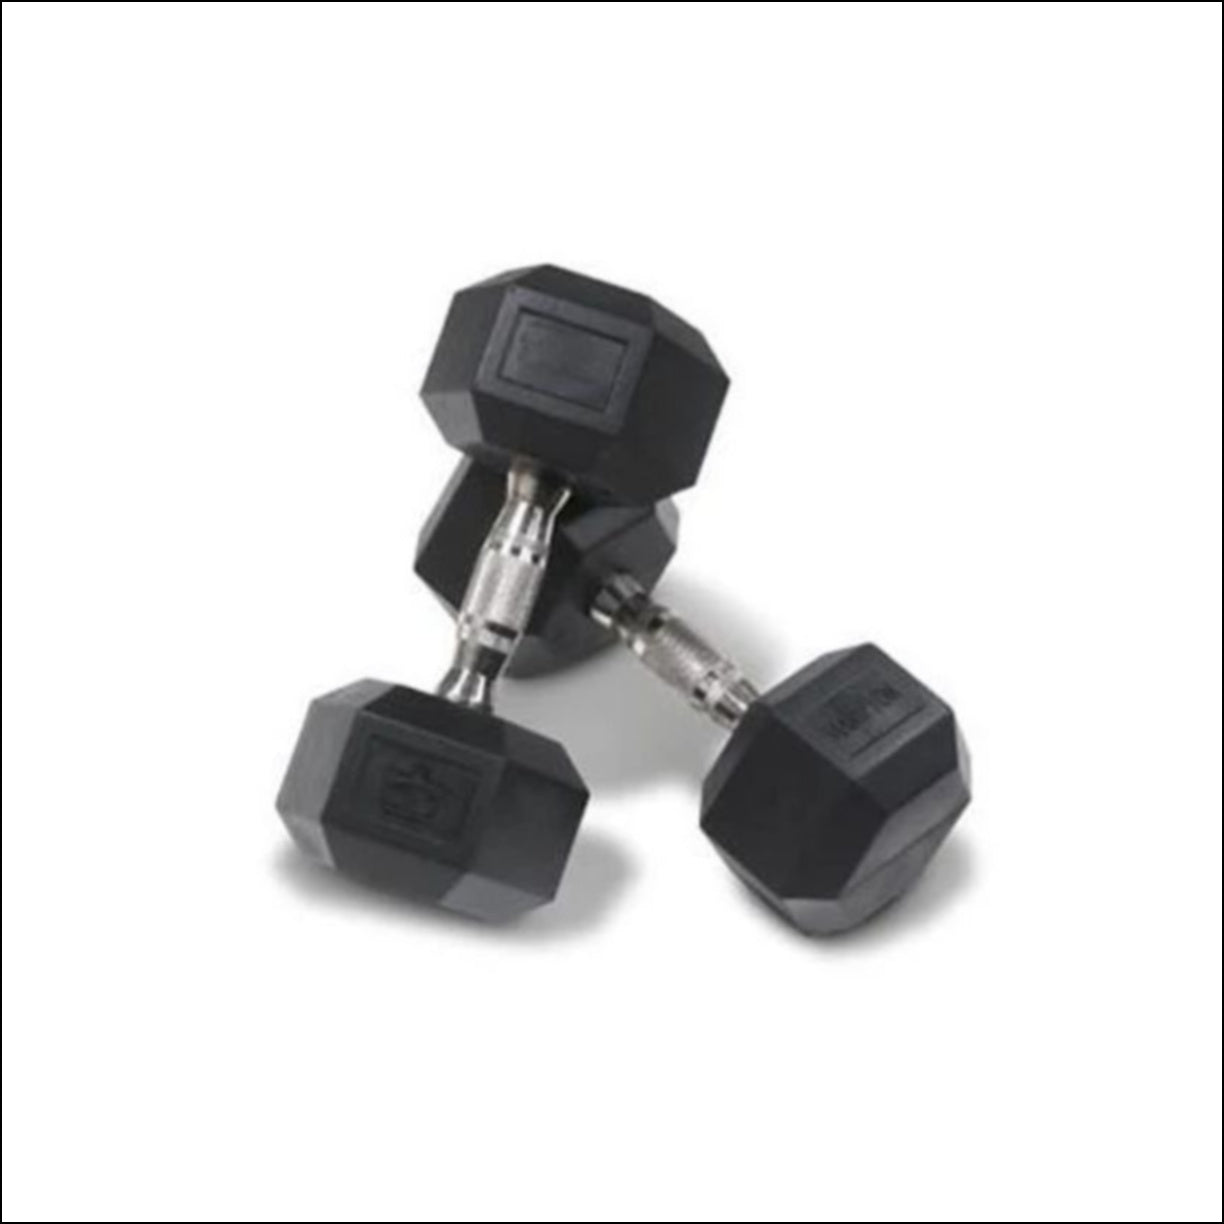 PAIR OF 3-KG RUBBER HEX DUMBBELLS  Muscle Motion rubber coated hexagonal dumbbells with ergonomic handles are designed for increased comfort and improved durability. The rubber coating reduces noise and improves the lifecycle of the product (other finishes such as chrome and cast iron are subject to chipping and rust). Rubber coated dumbbells are also kinder on floor surfaces. The hexagonal shaped ends are designed to prevent the dumbbell from rolling on the floor or dumbbell rack.